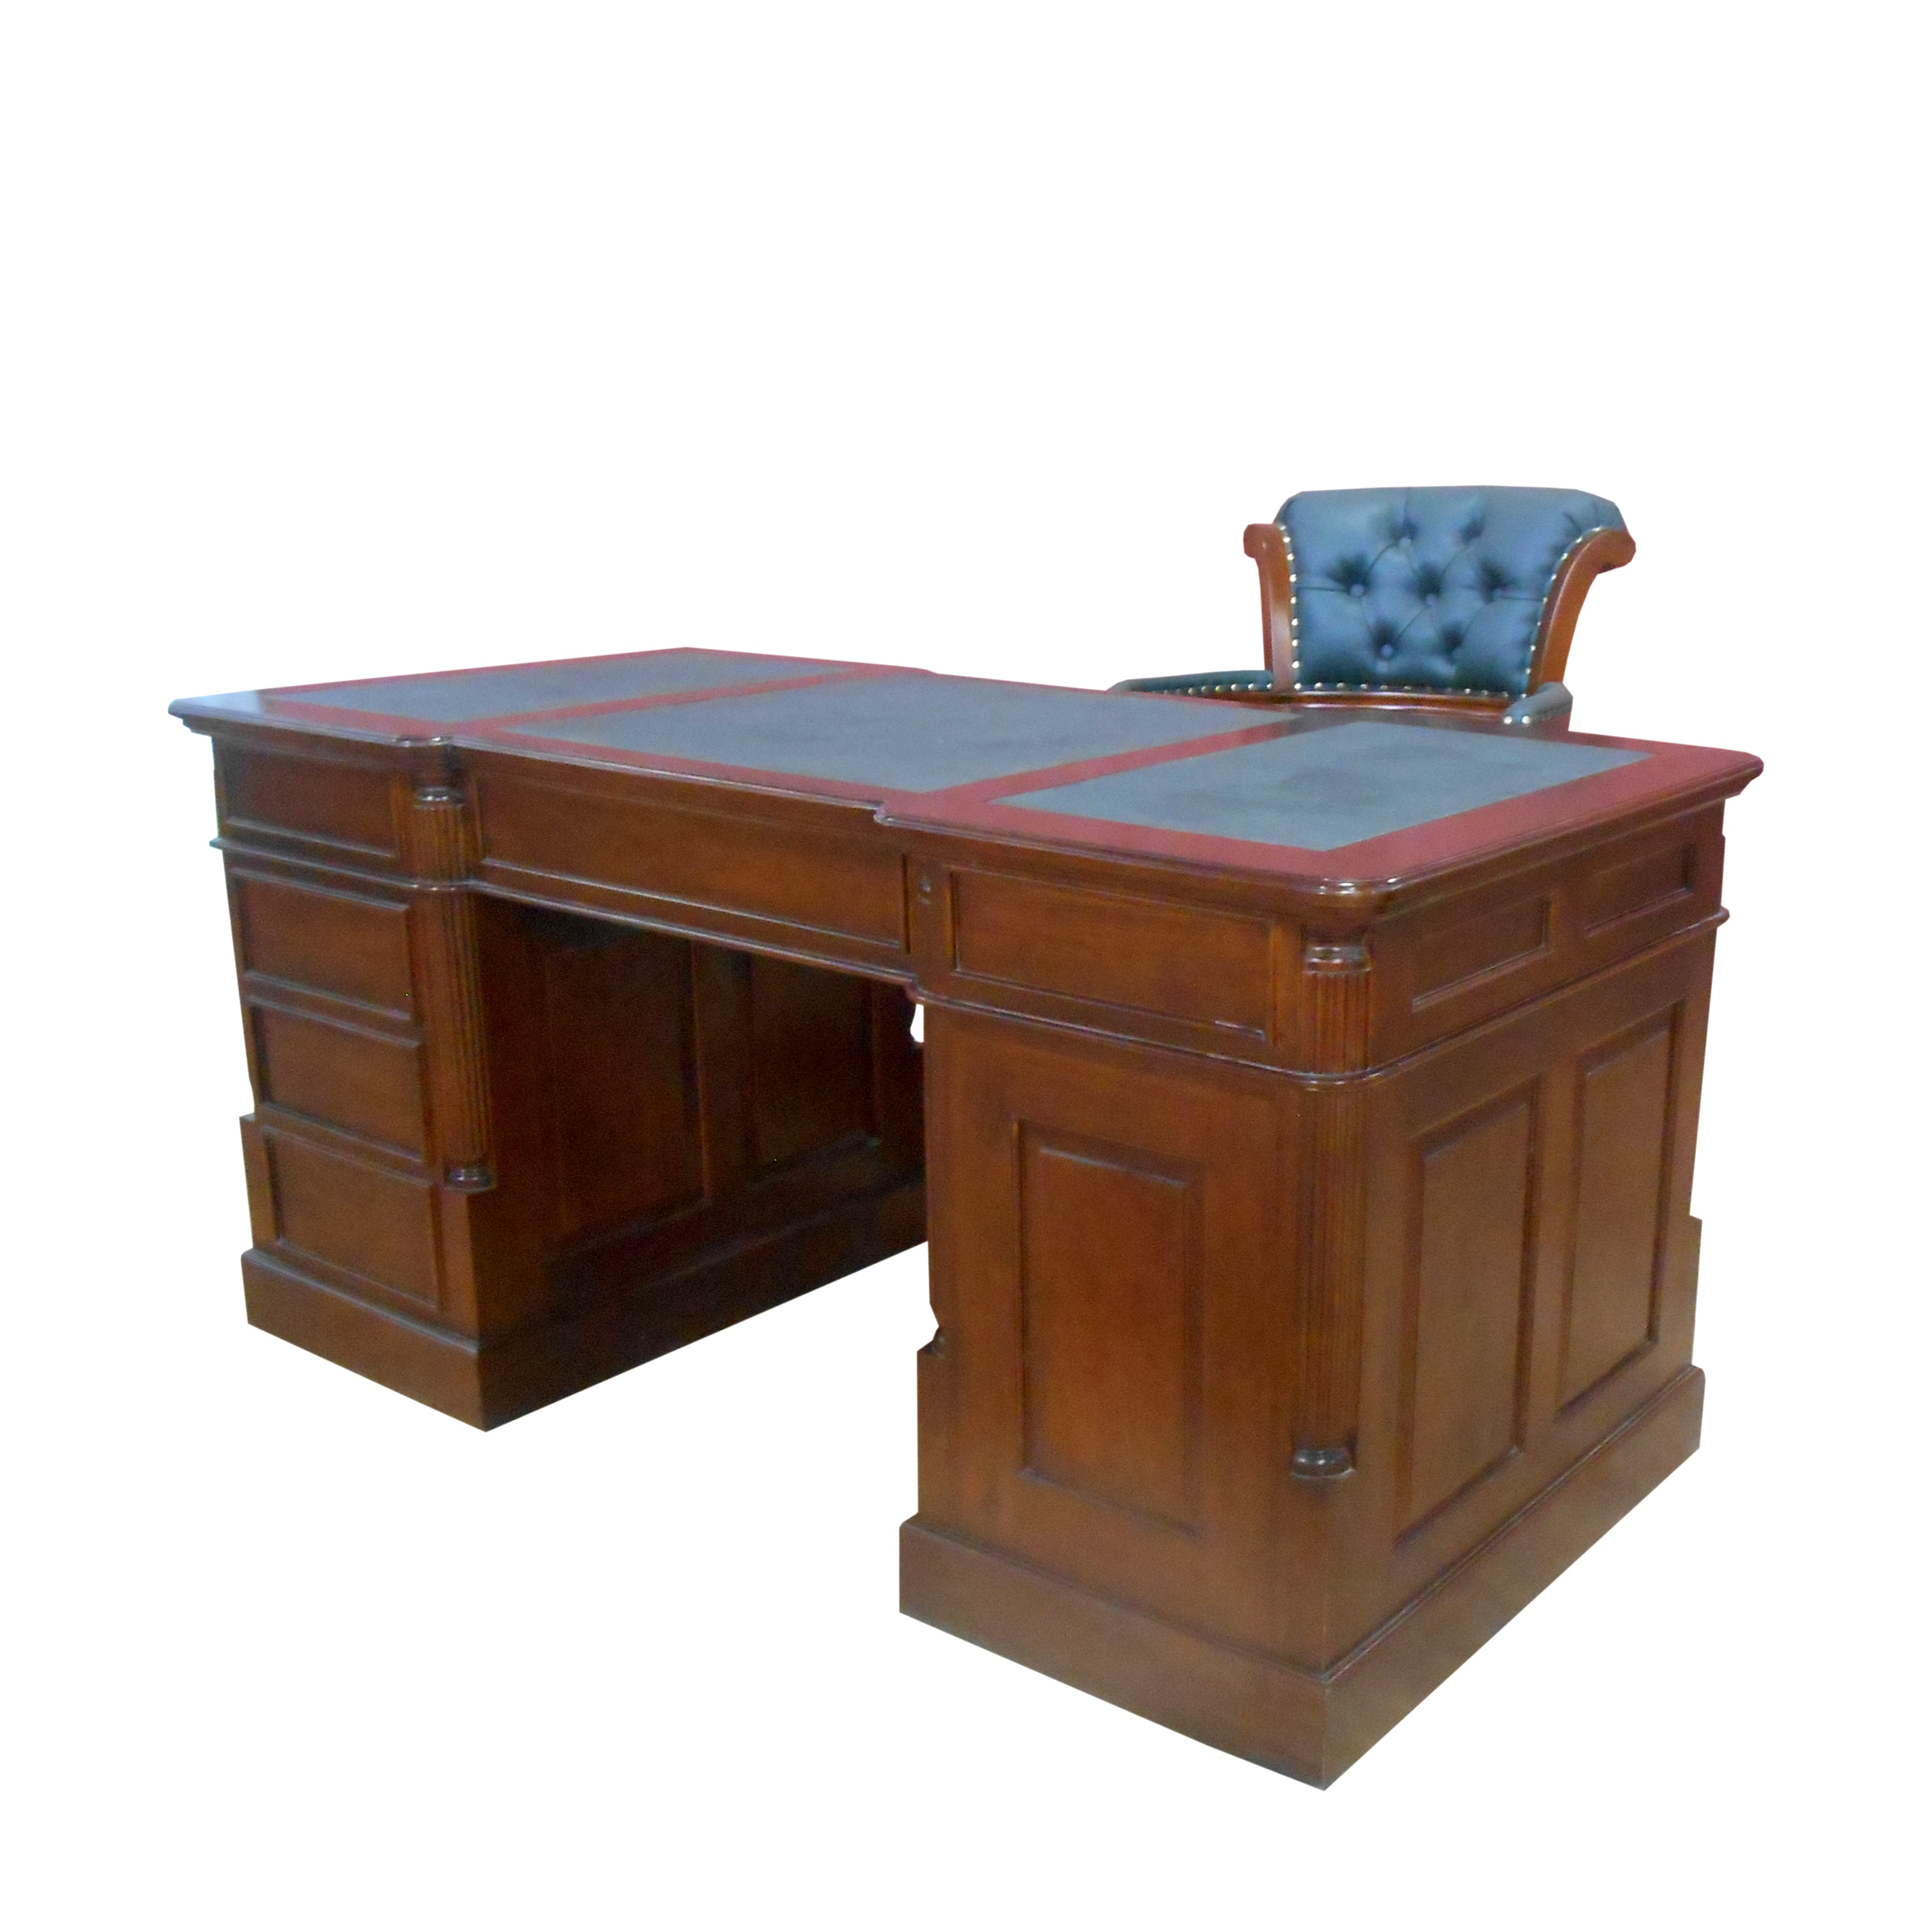 Classic Table Office Classic Furniture Mahogany Indonesia Partner Desk Classic Office Furniture Buy Office Furniture Office Desks Classic Home Office Furniture Product